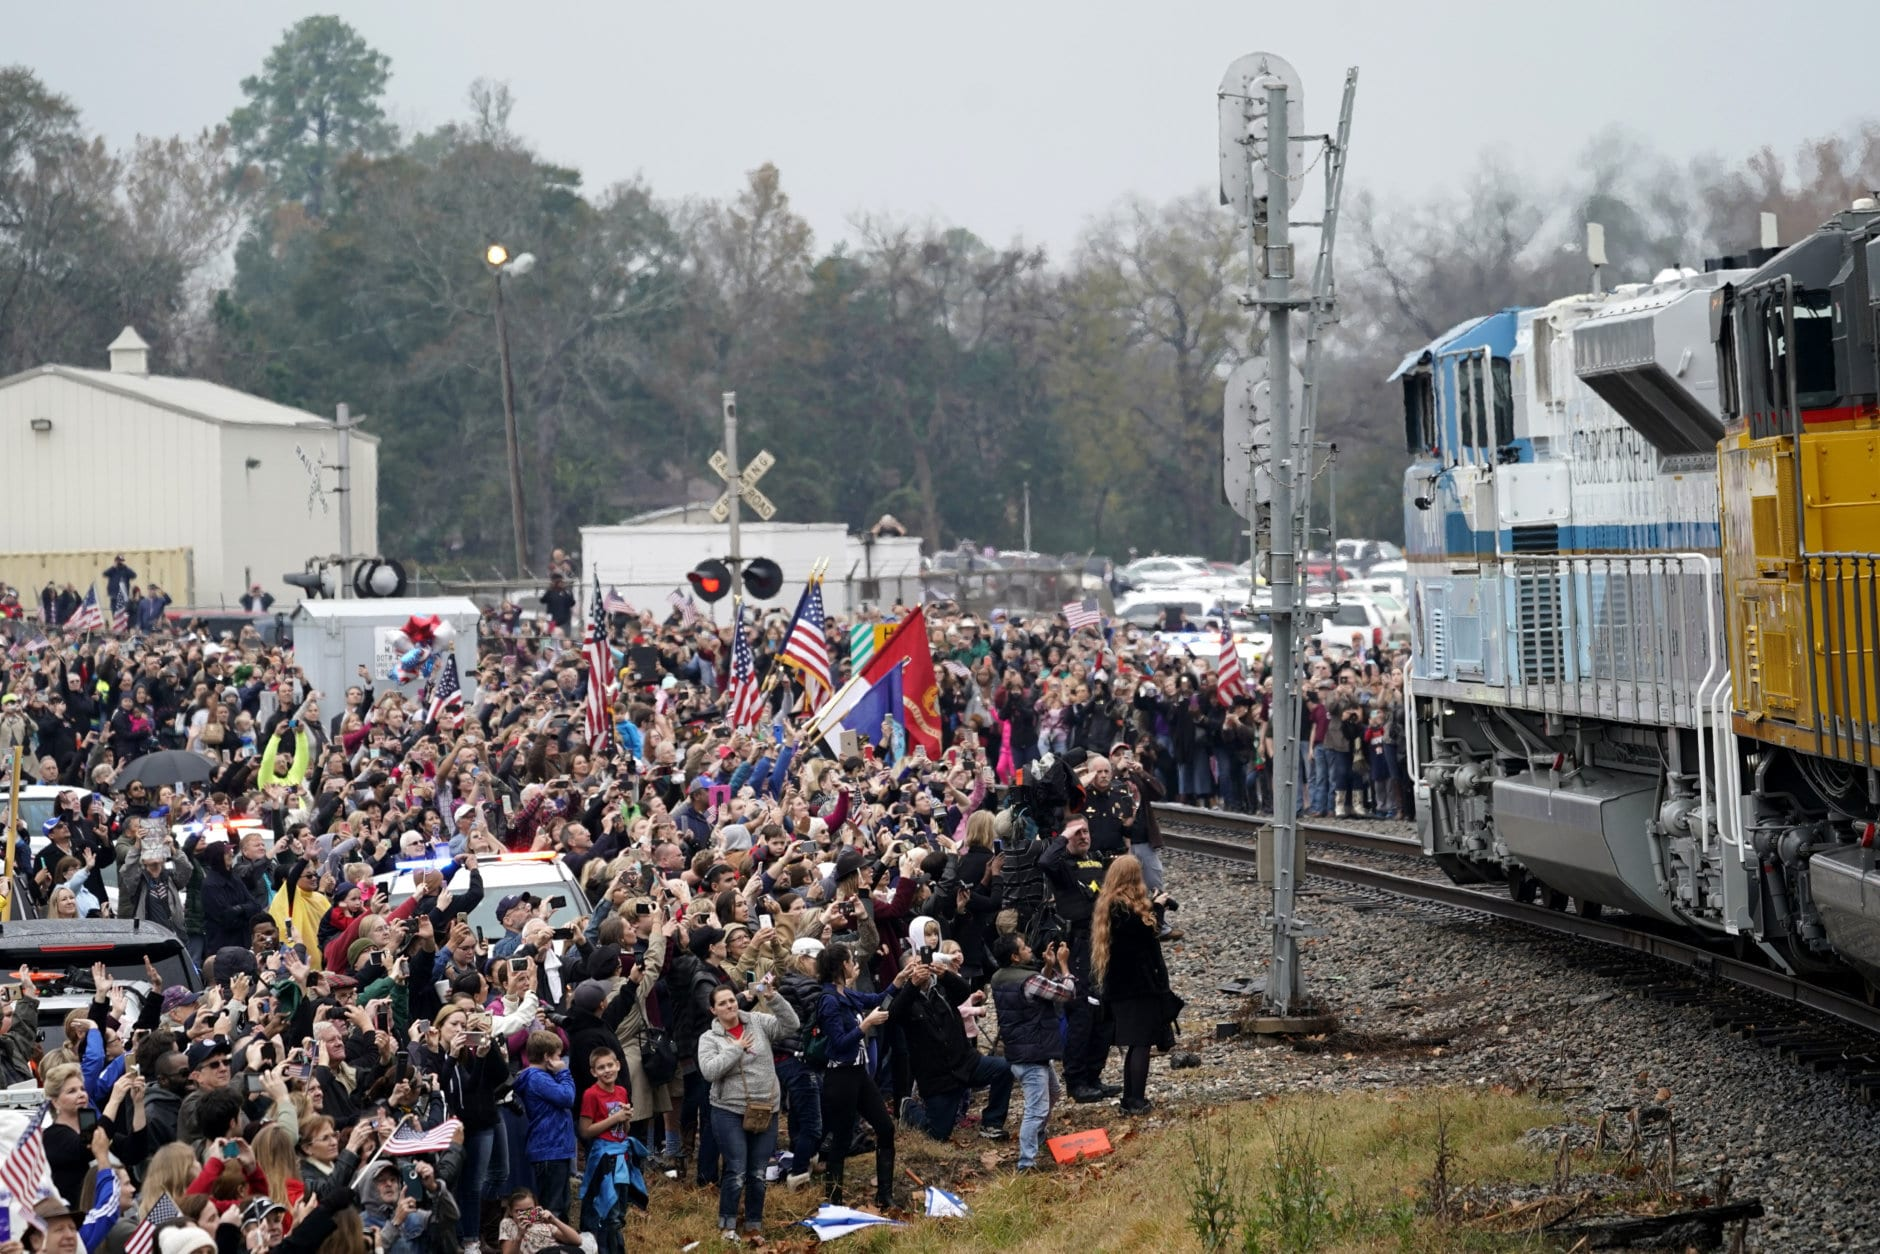 People pay their respects as the train carrying the casket of former President George H.W. Bush passes Thursday, Dec. 6, 2018, along the route from Spring to College Station, Texas. (AP Photo/David J. Phillip, Pool)